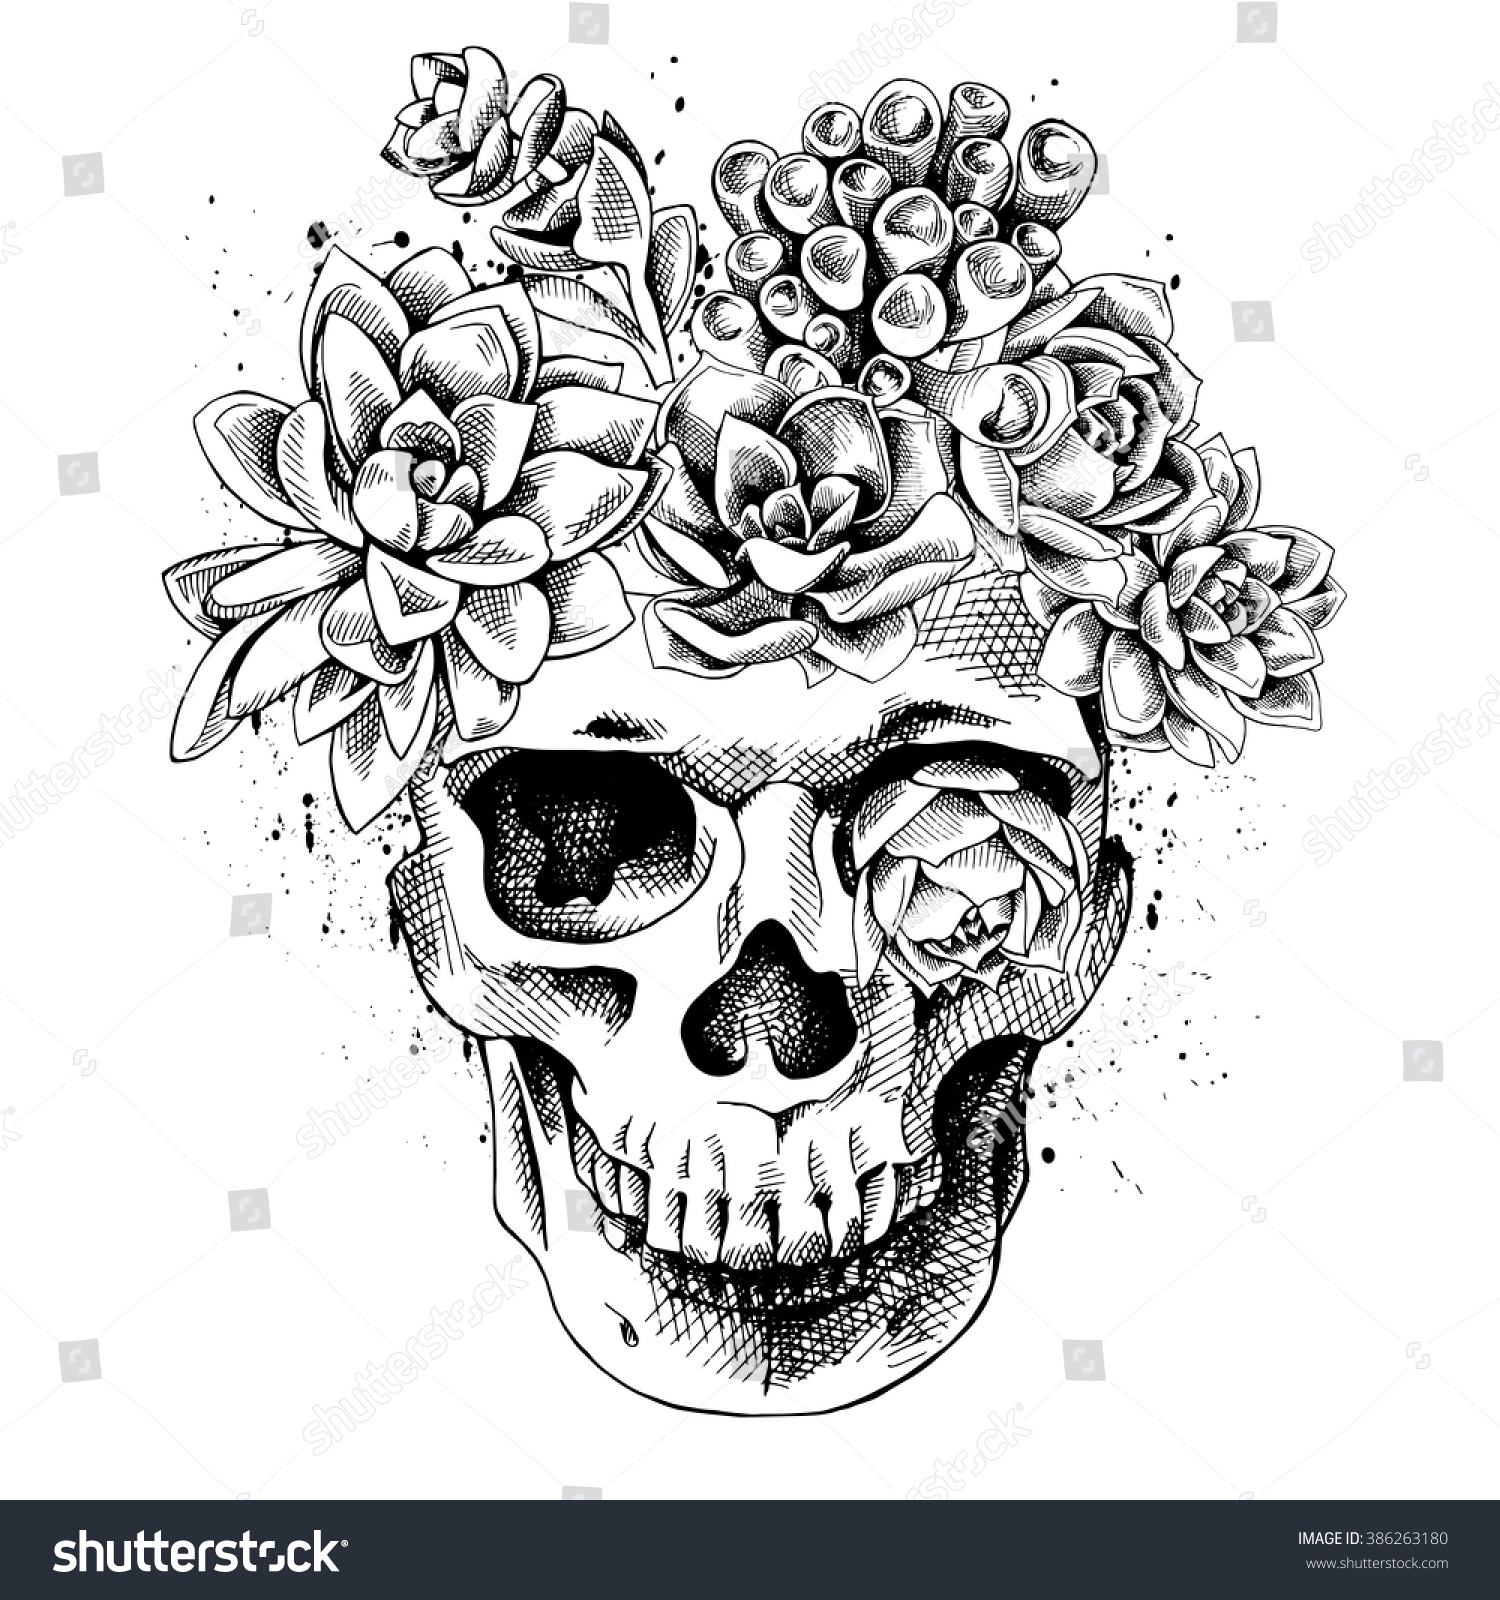 Skull Succulent Plants Vector Illustration Stock Vector Royalty Free 386263180